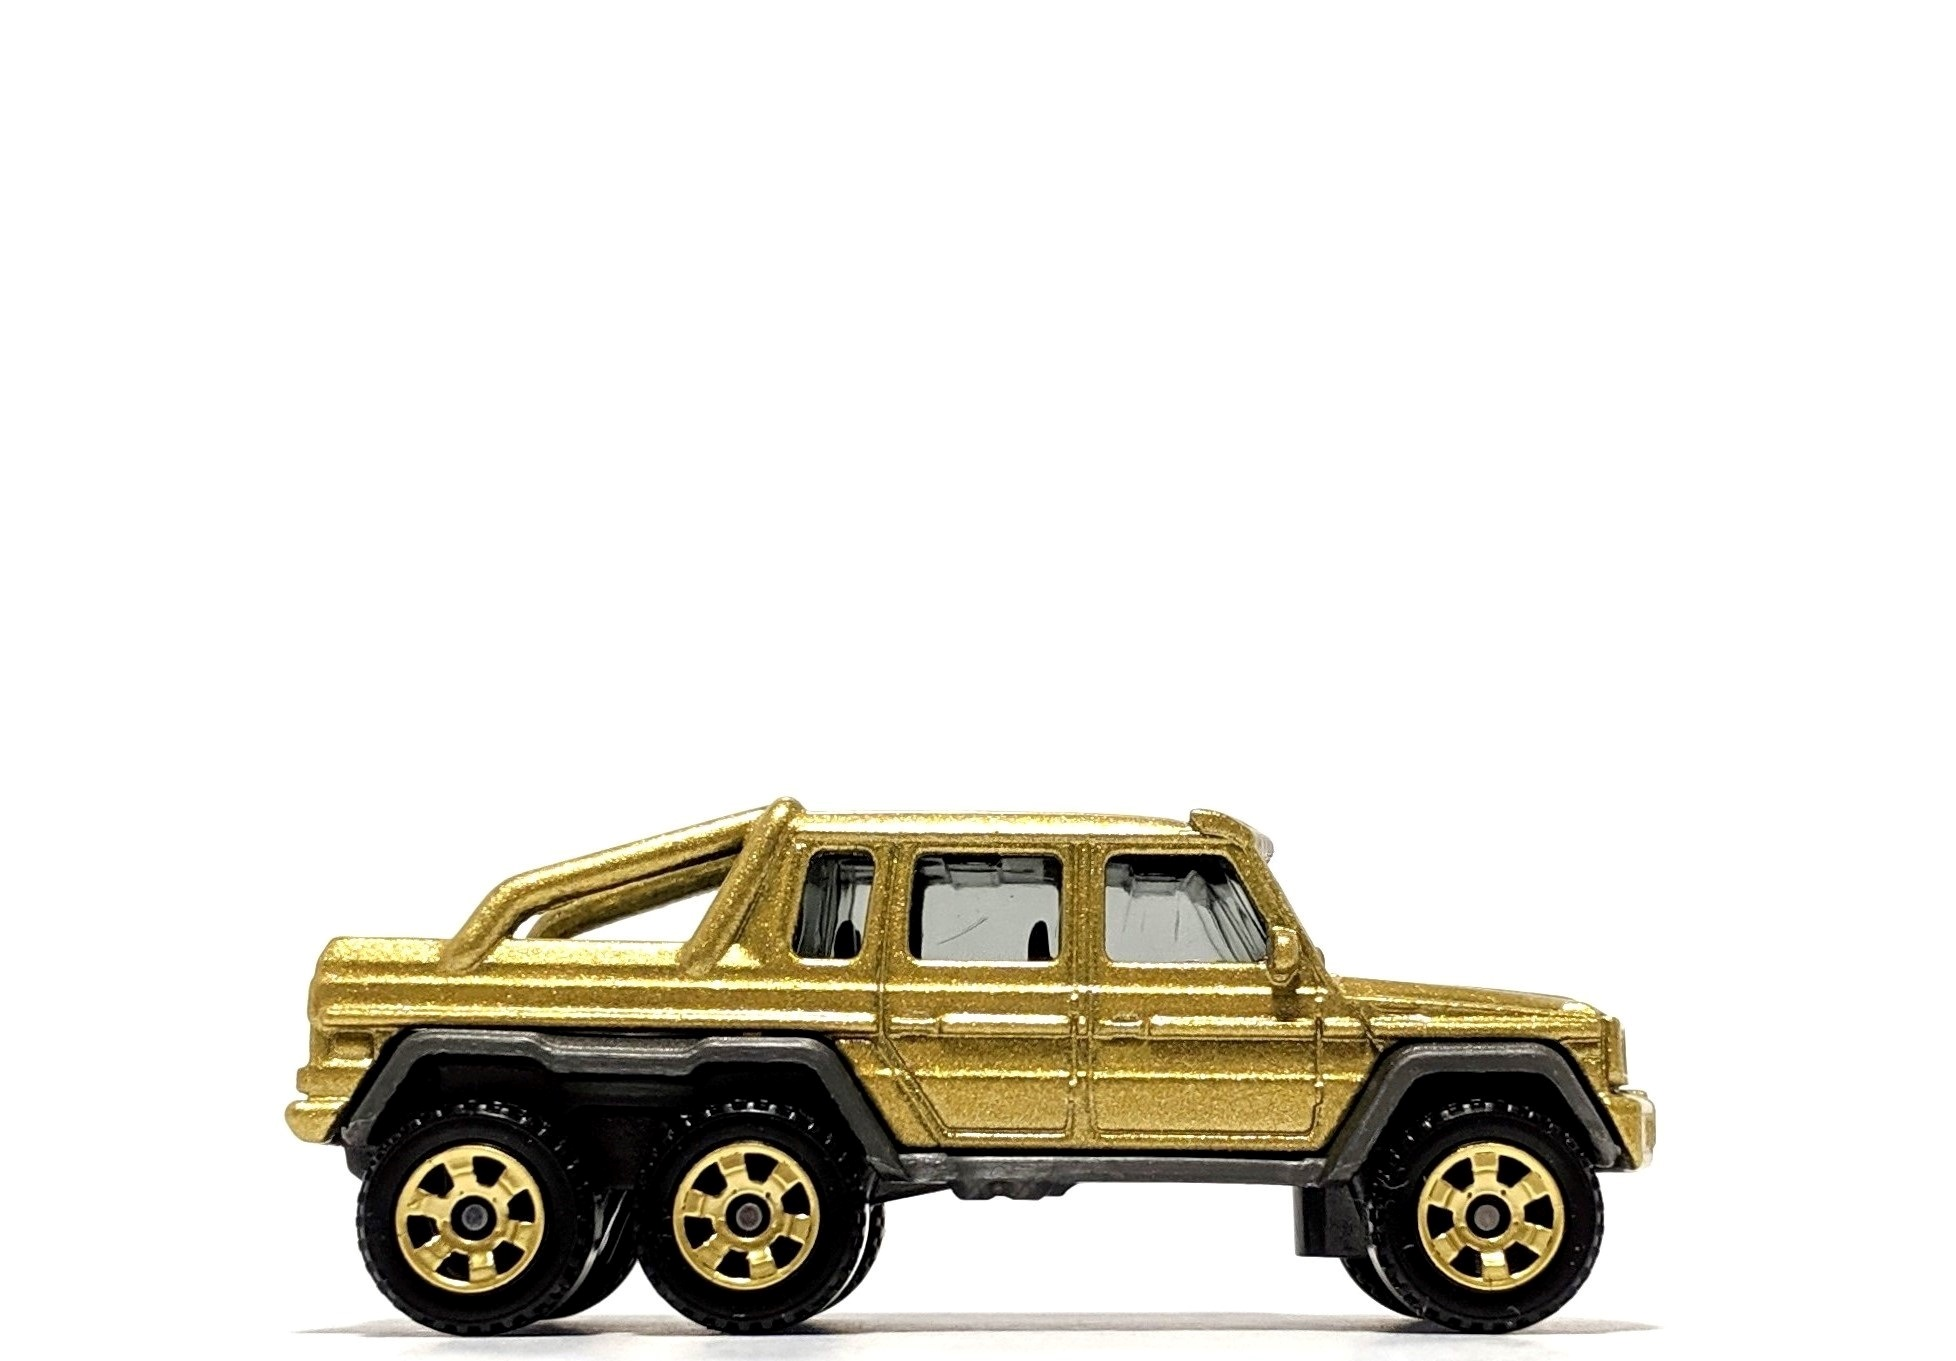 Mercedes-Benz G63 AMG 6x6, by Matchbox (Target-exclusive 50th Anniversary Superfast)